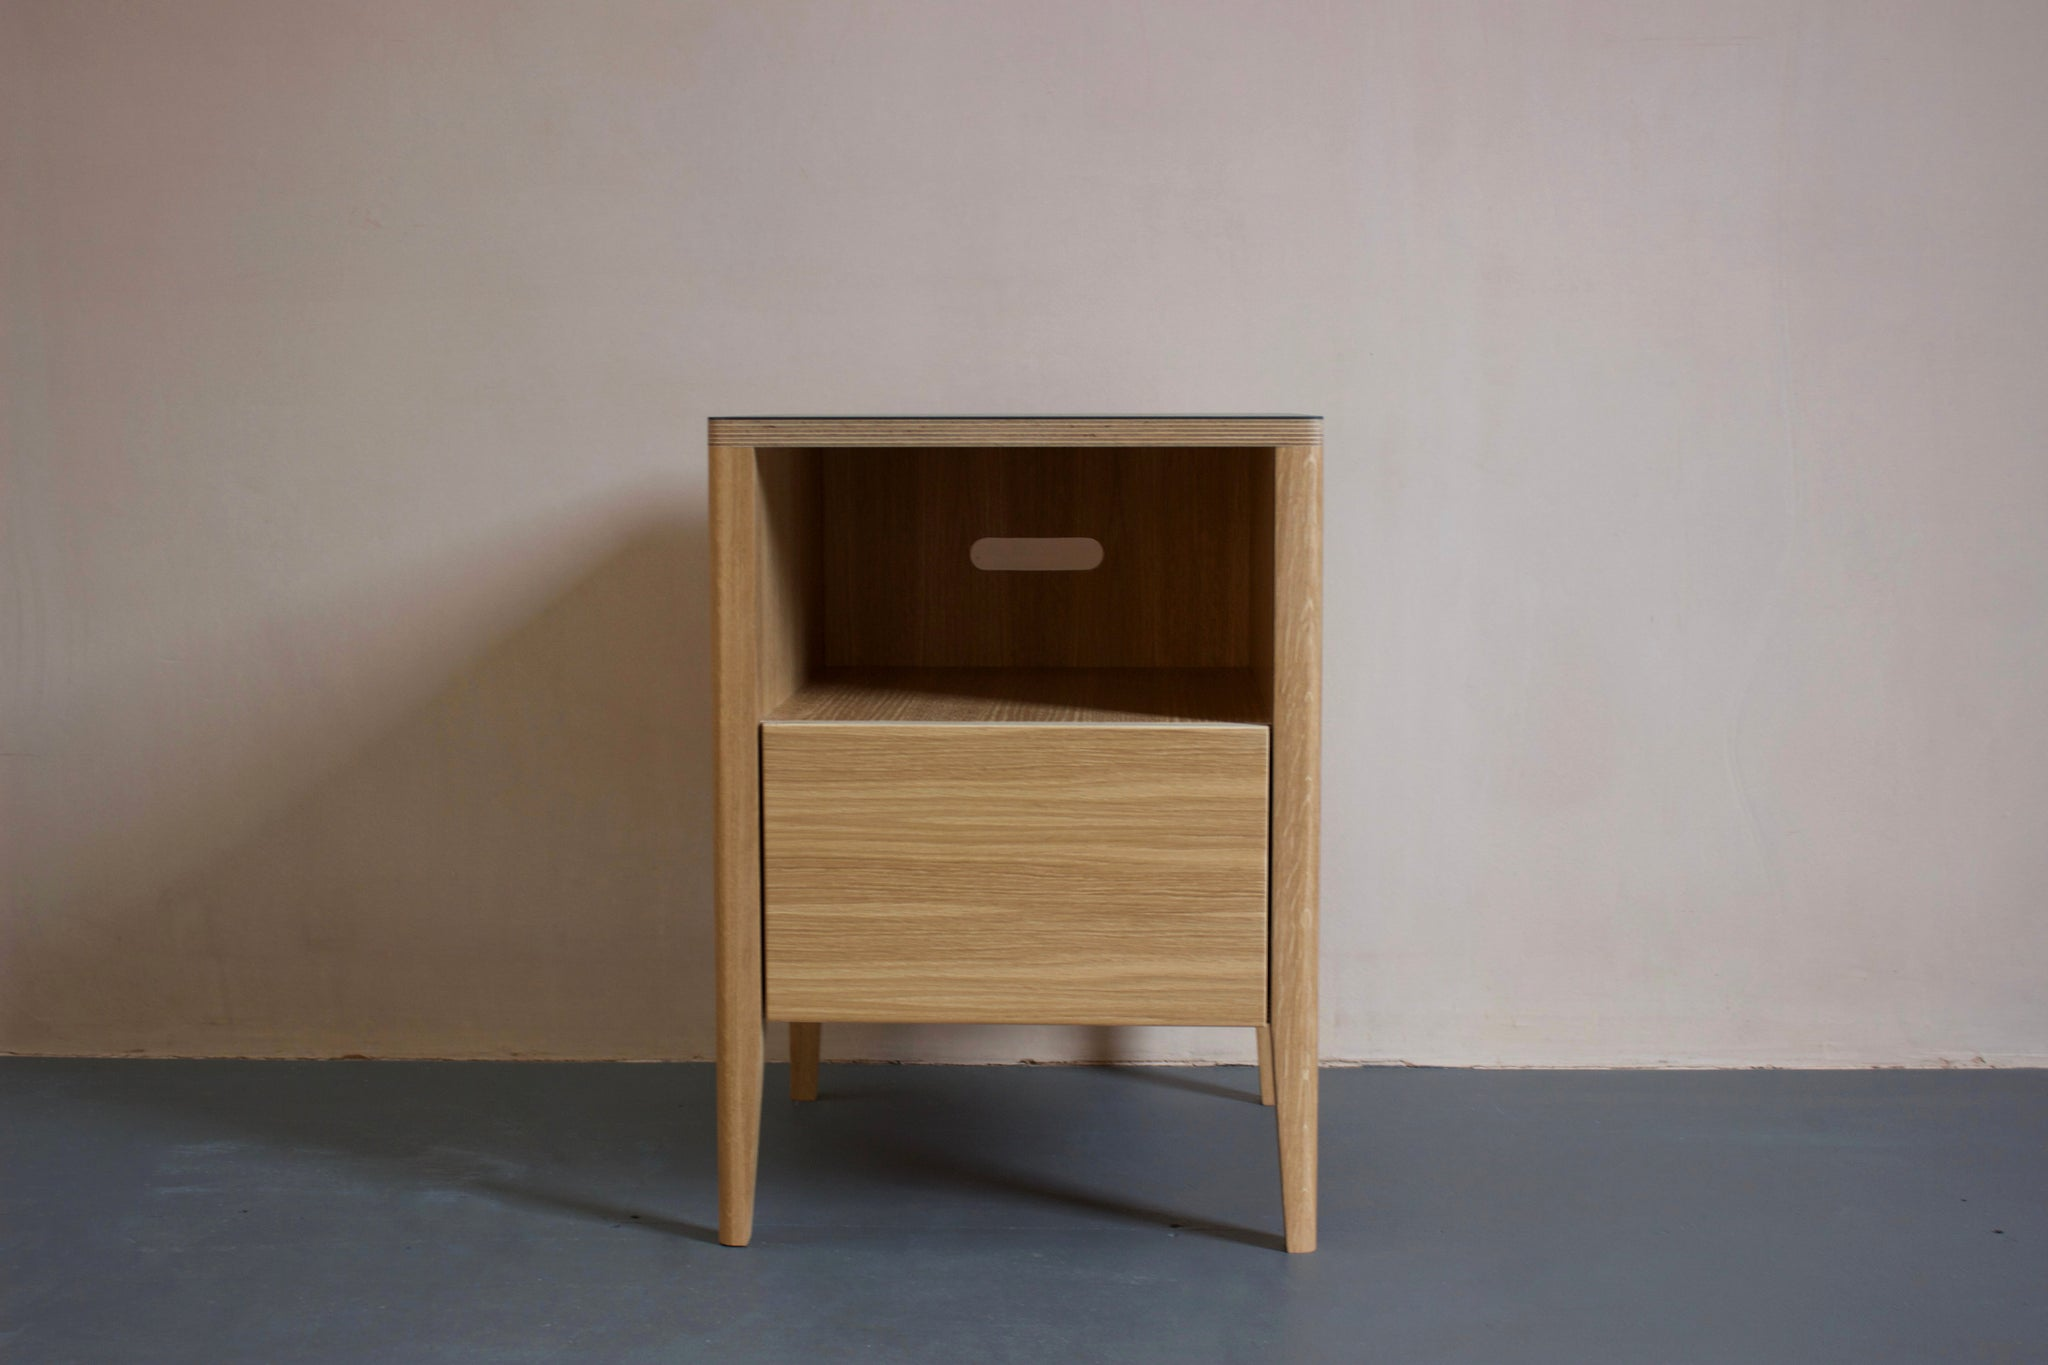 The Huxley bedside table in oak veneer plywood with Forbo linoleum top and solid oak legs. Designed and made by Jon Grant London in Leyton, East London.